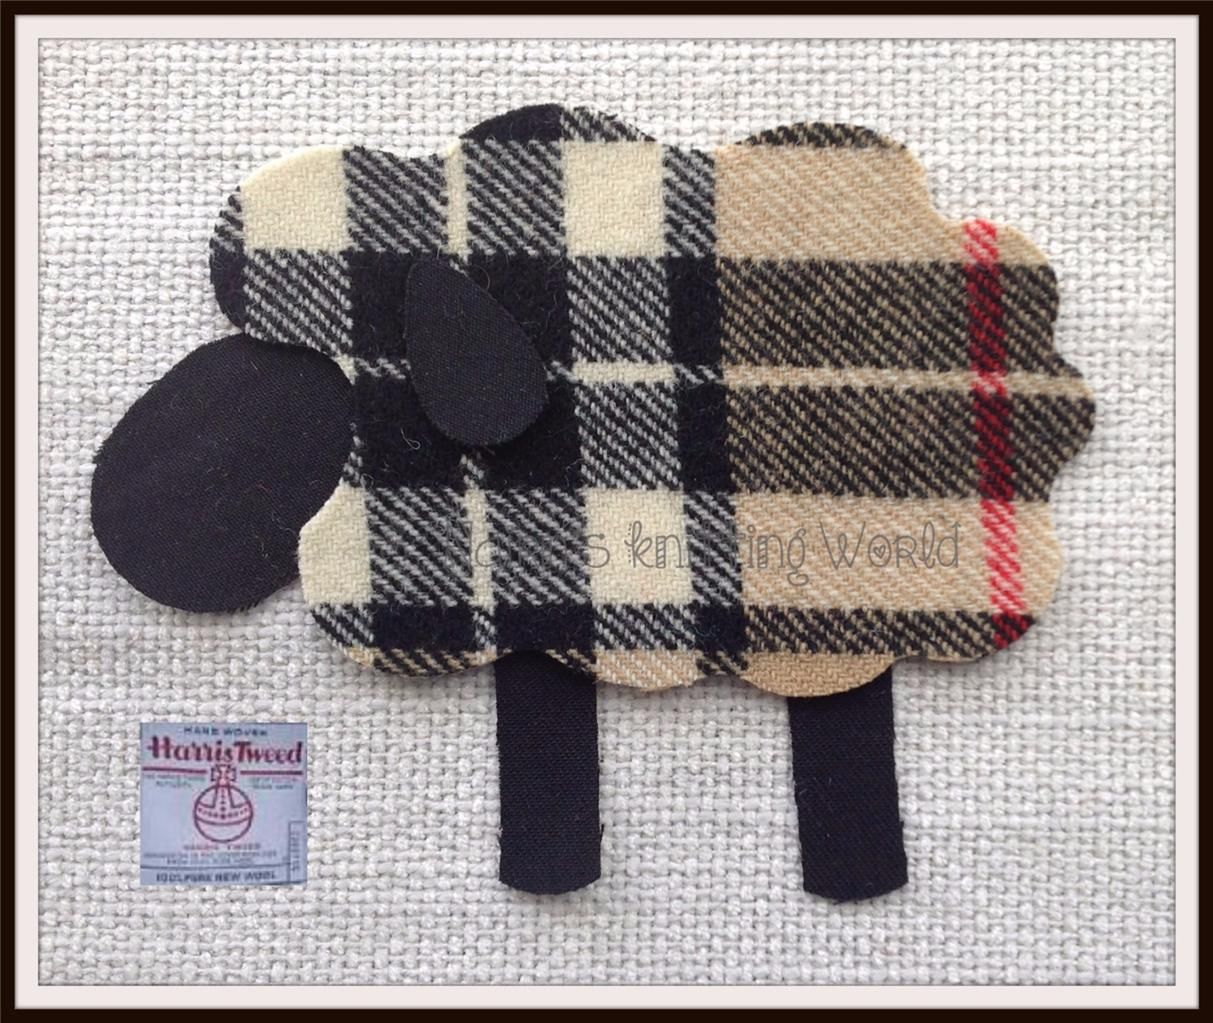 Highland Sheep Patch Applique Sew On. Cut Out Tartan Iron On Beige